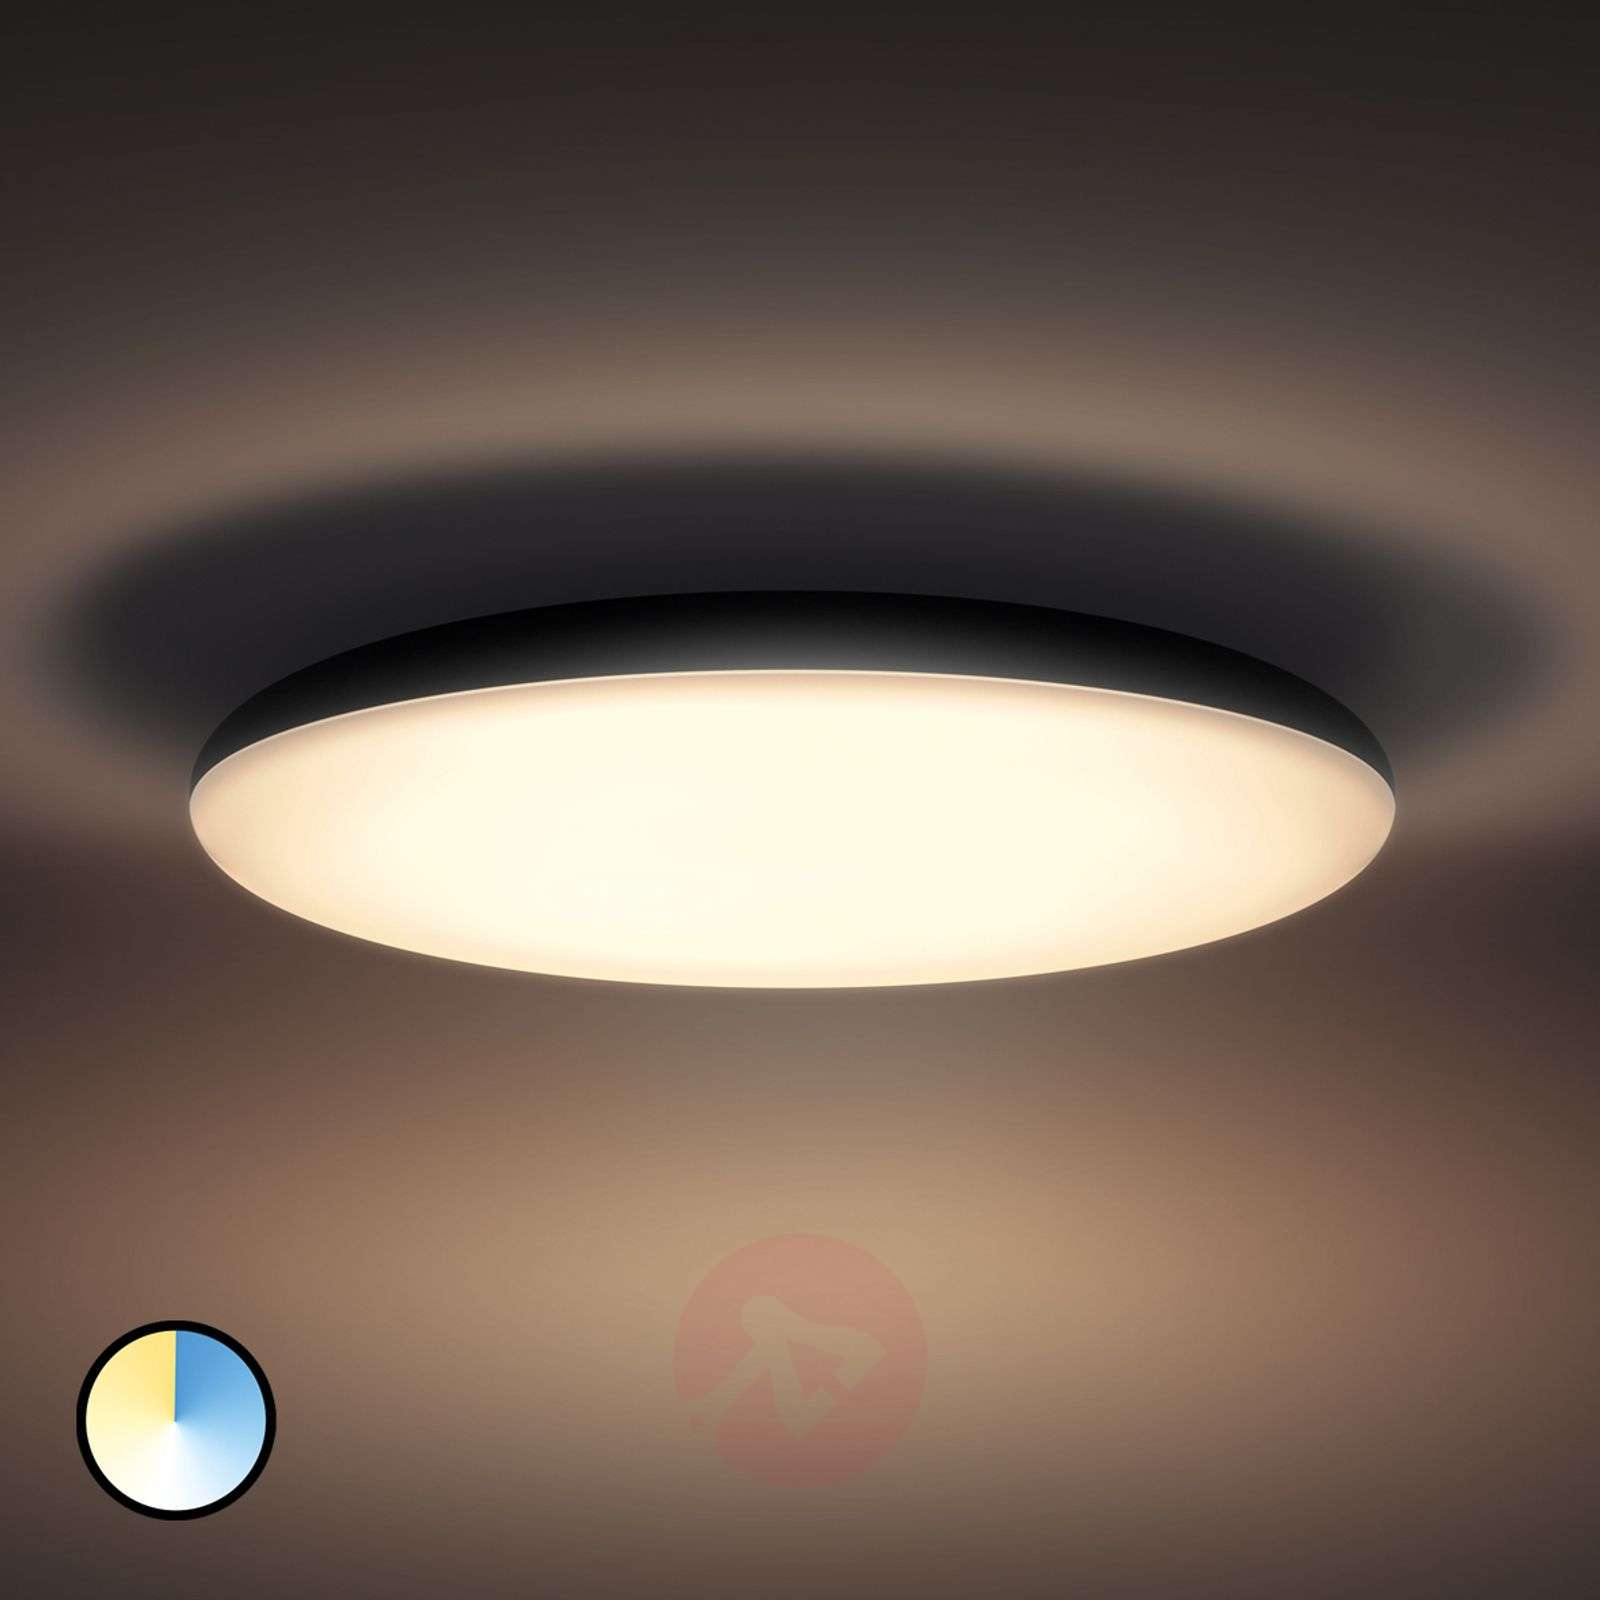 Plafoniere A Led Per Bagno Philips : Acquista plafoniera led cher philips hue dimmer lampade.it